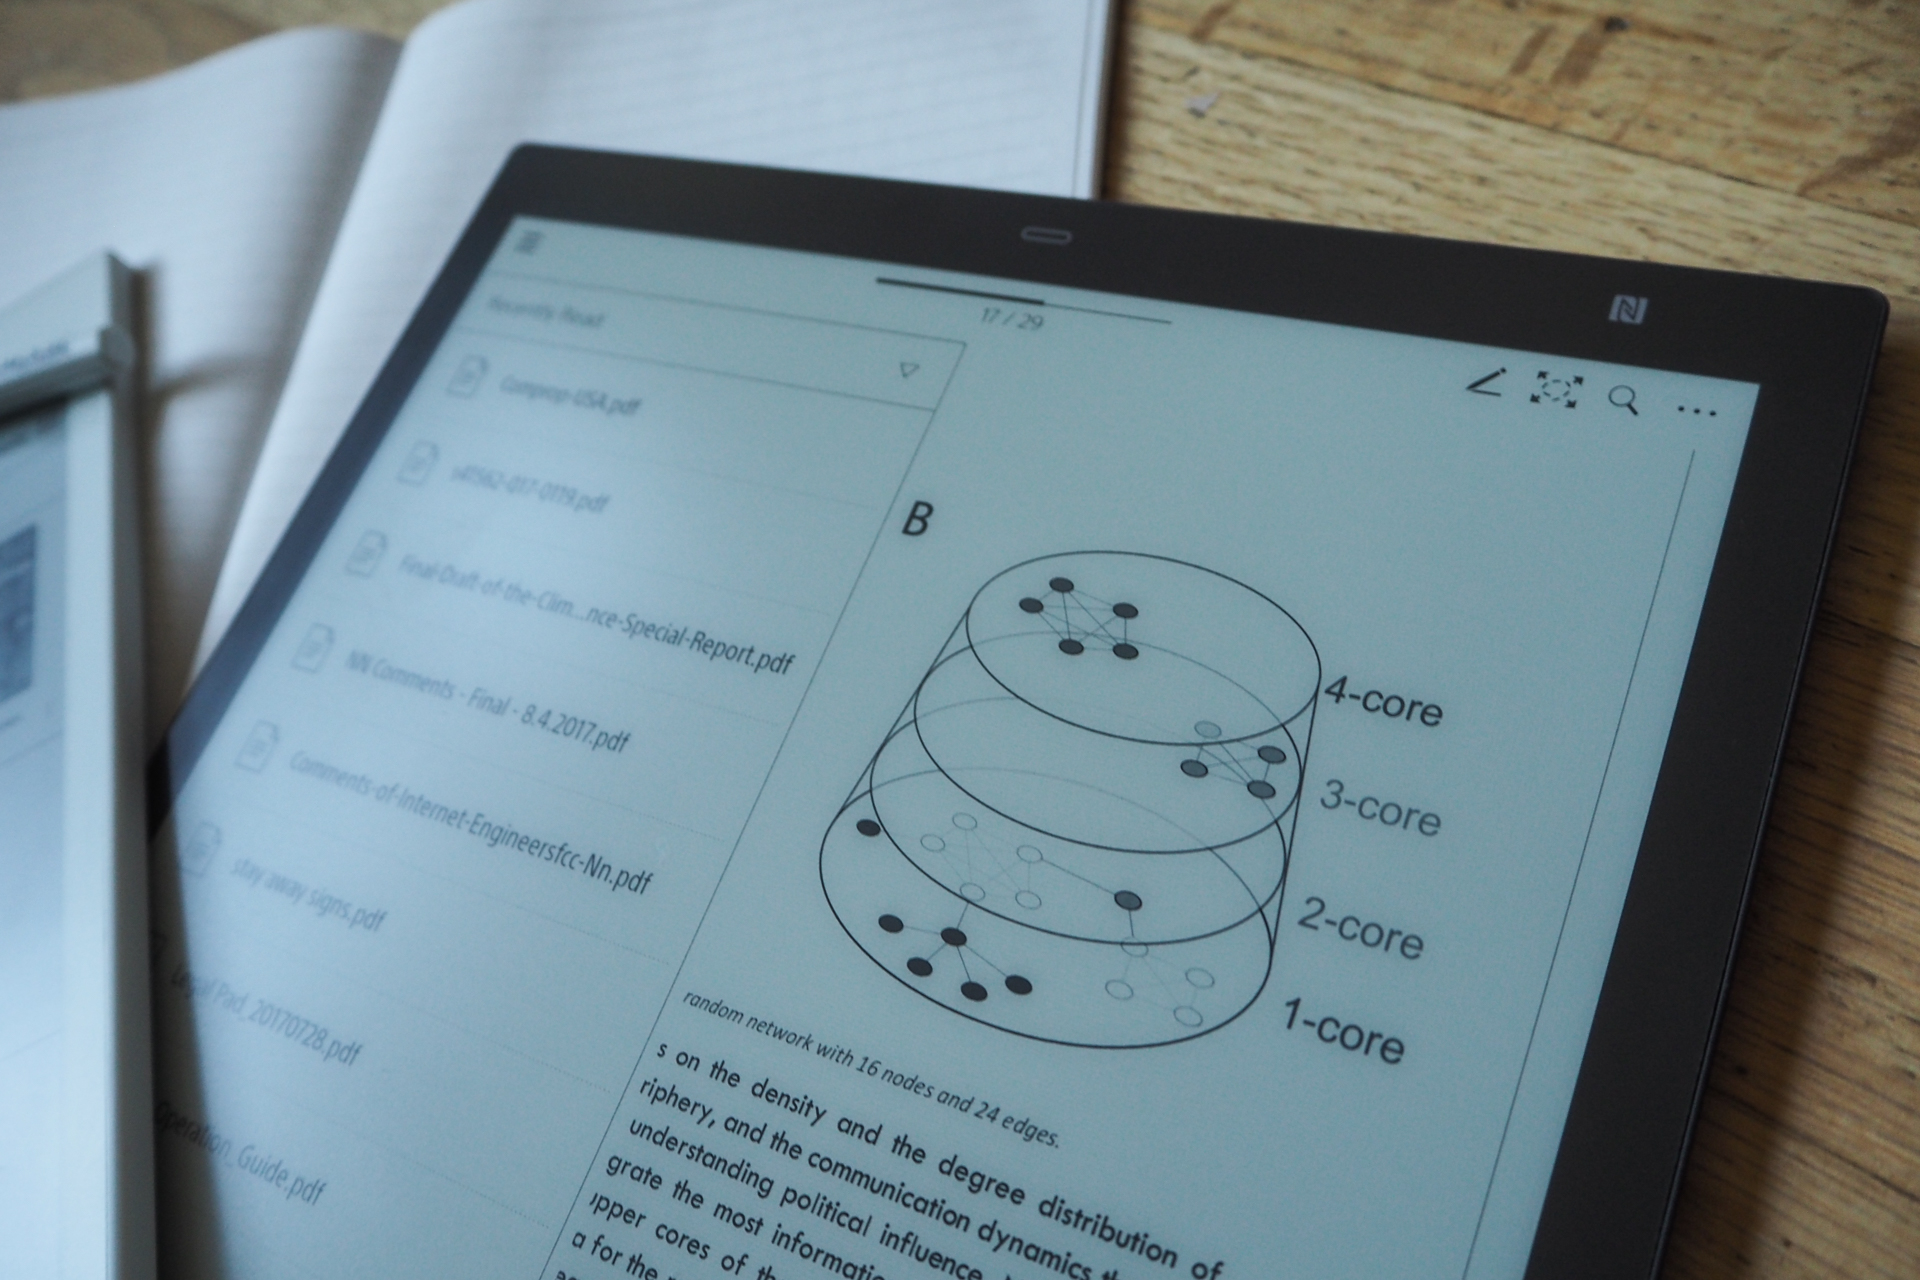 Sony and reMarkable's dueling e-paper tablets are strange but